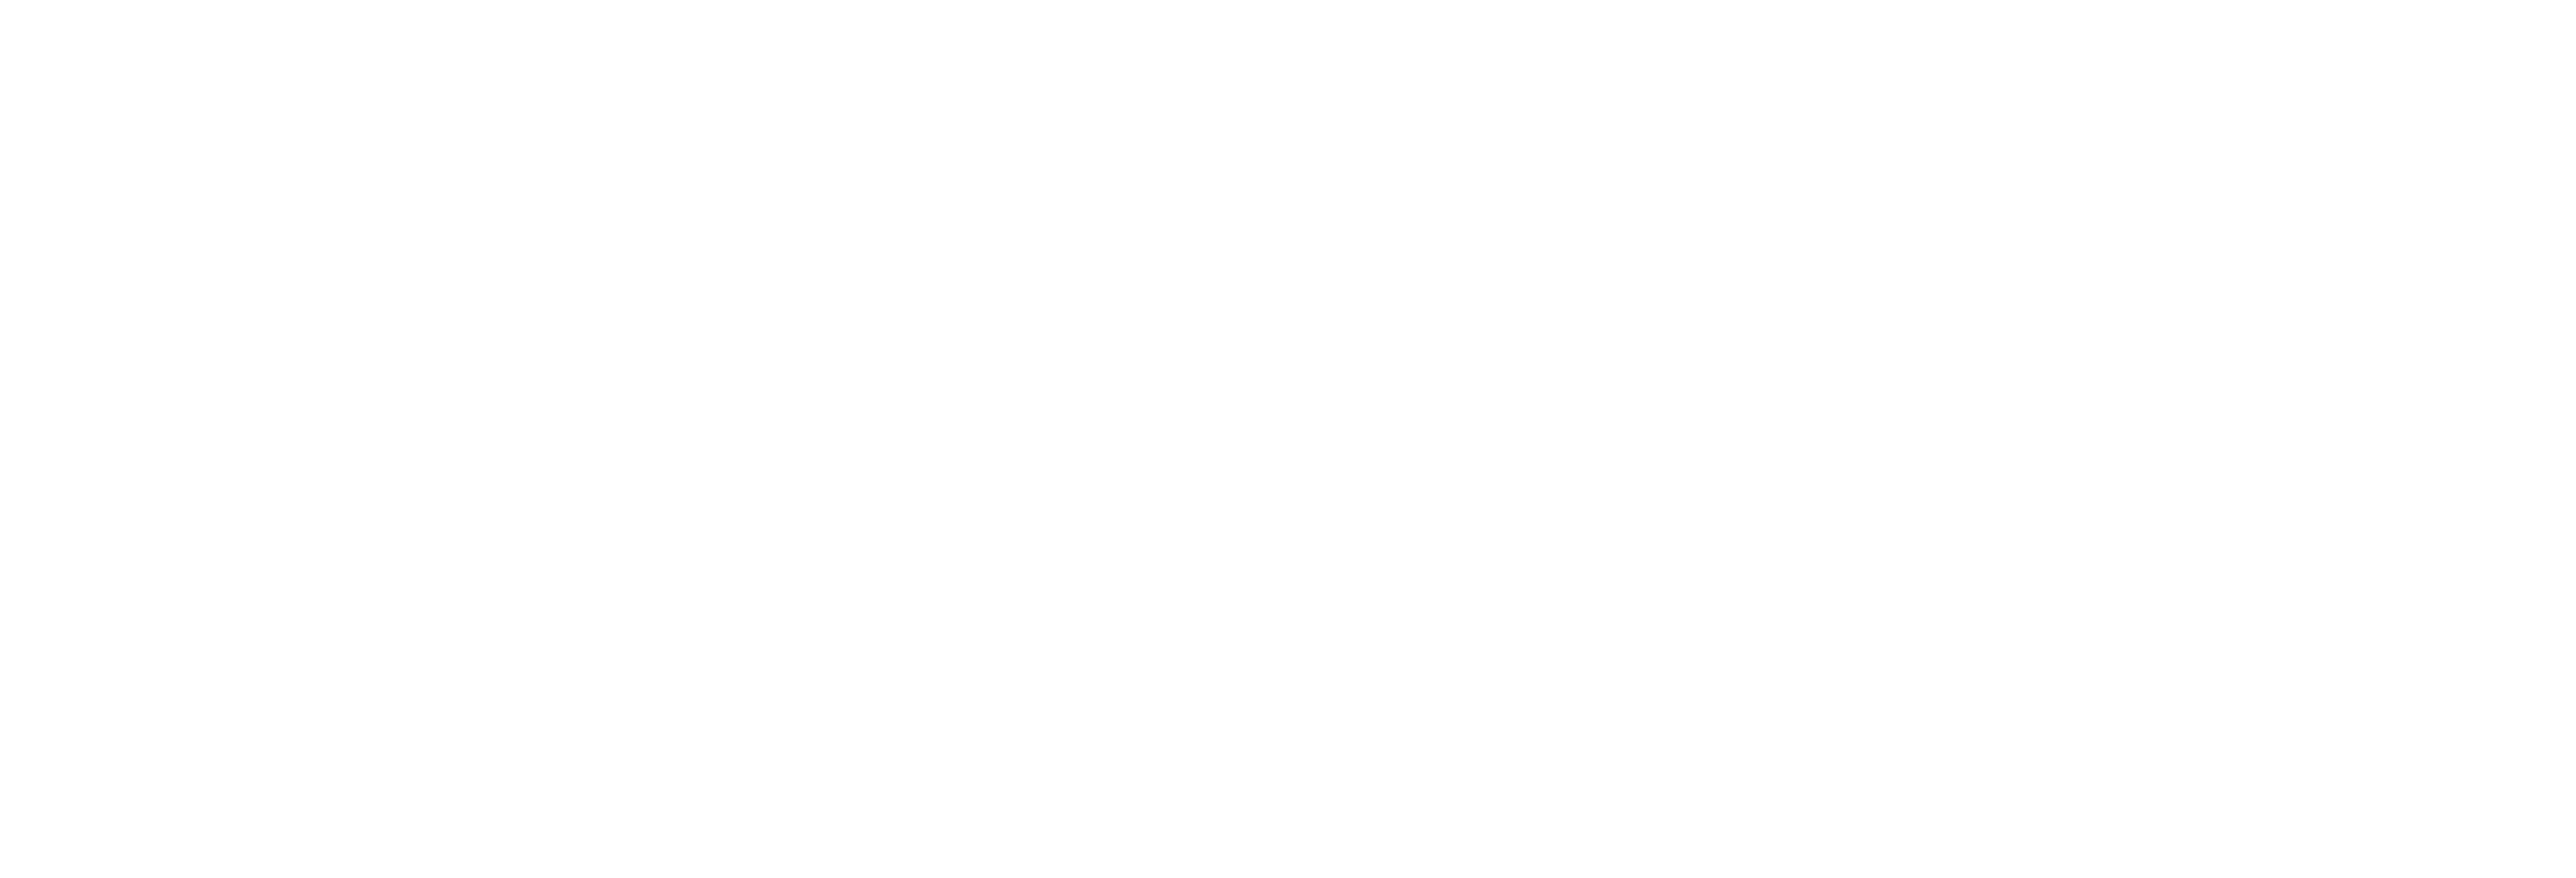 Zeppelin We Create Solutions